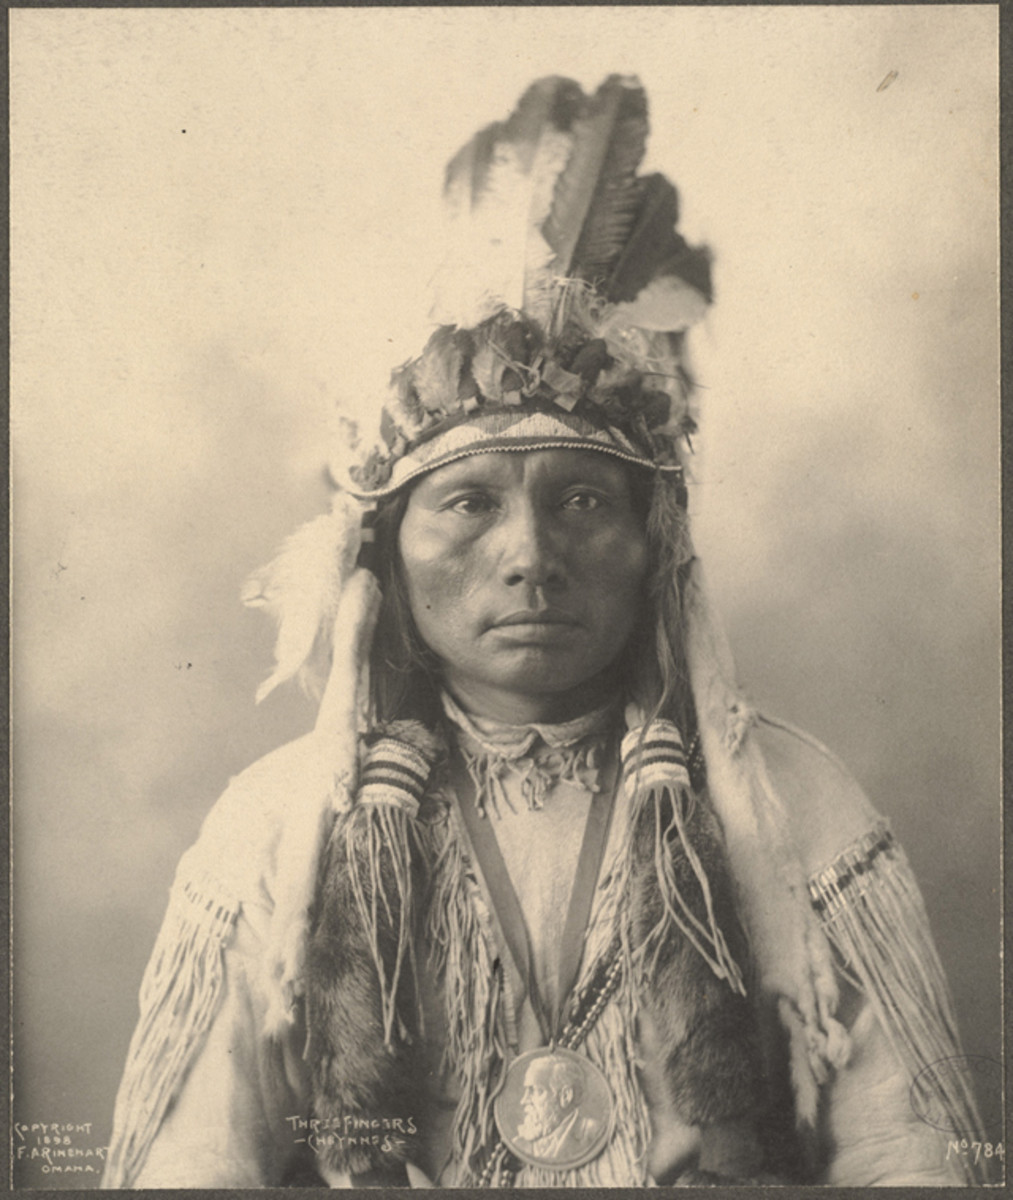 The reverse is engraved with the name THREE / FINGERS, a Cheyenne leader although not one listed among the original recipients.